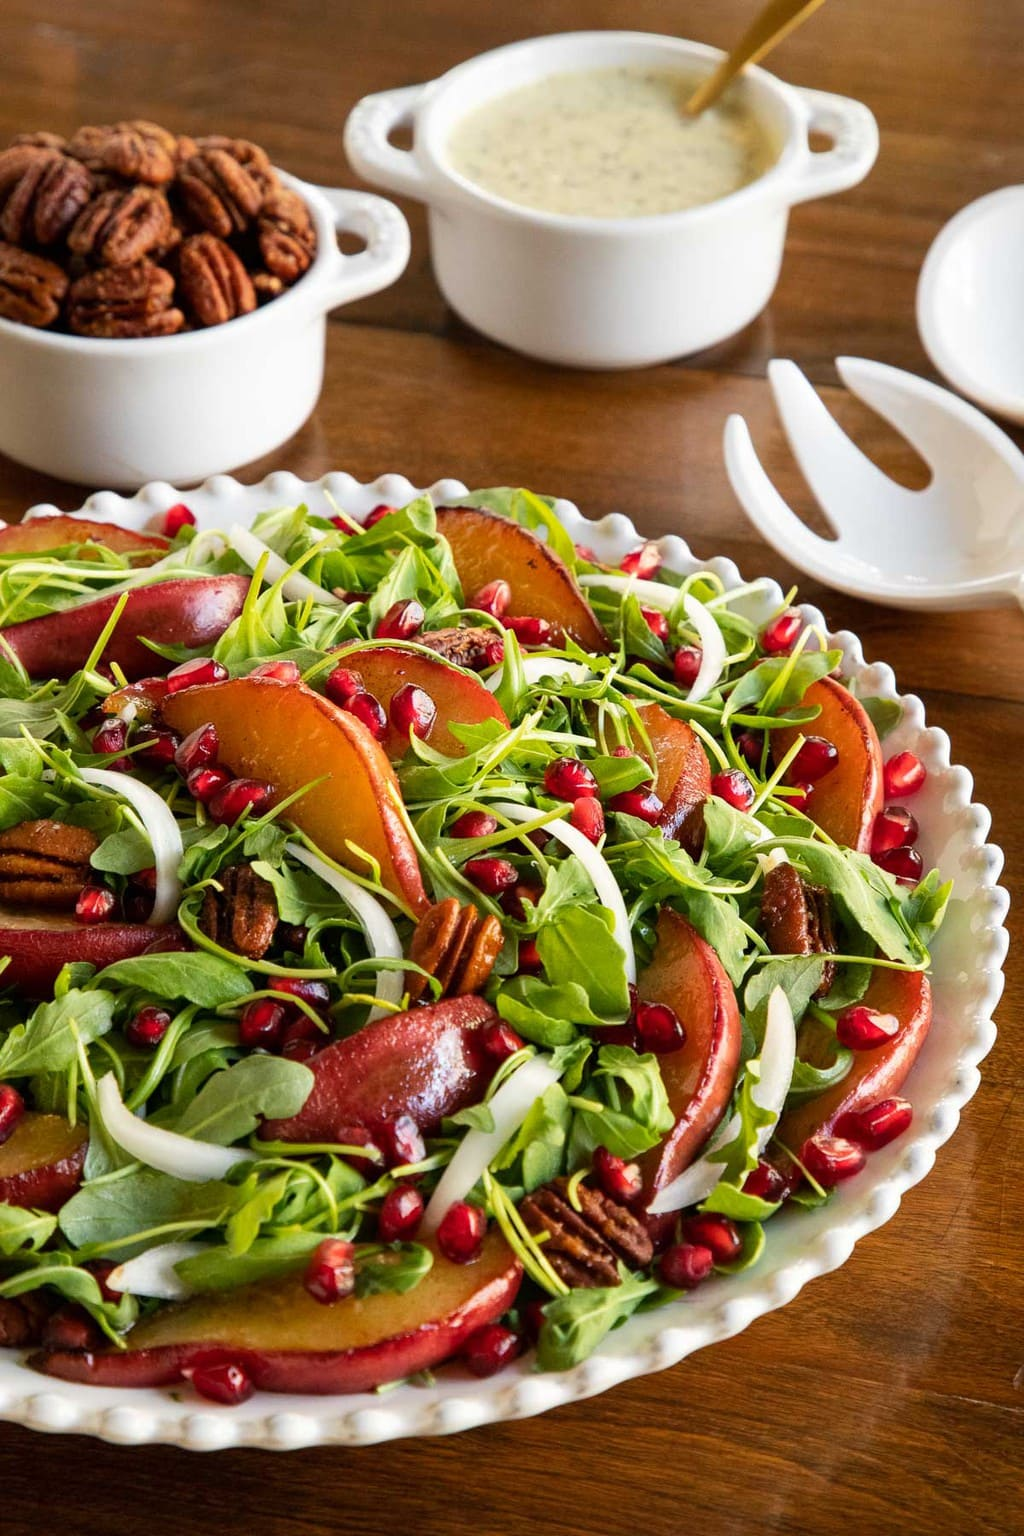 Vertical photo of a Caramelized Pear Arugula Salad on a white scalloped serving plate on a wood table.